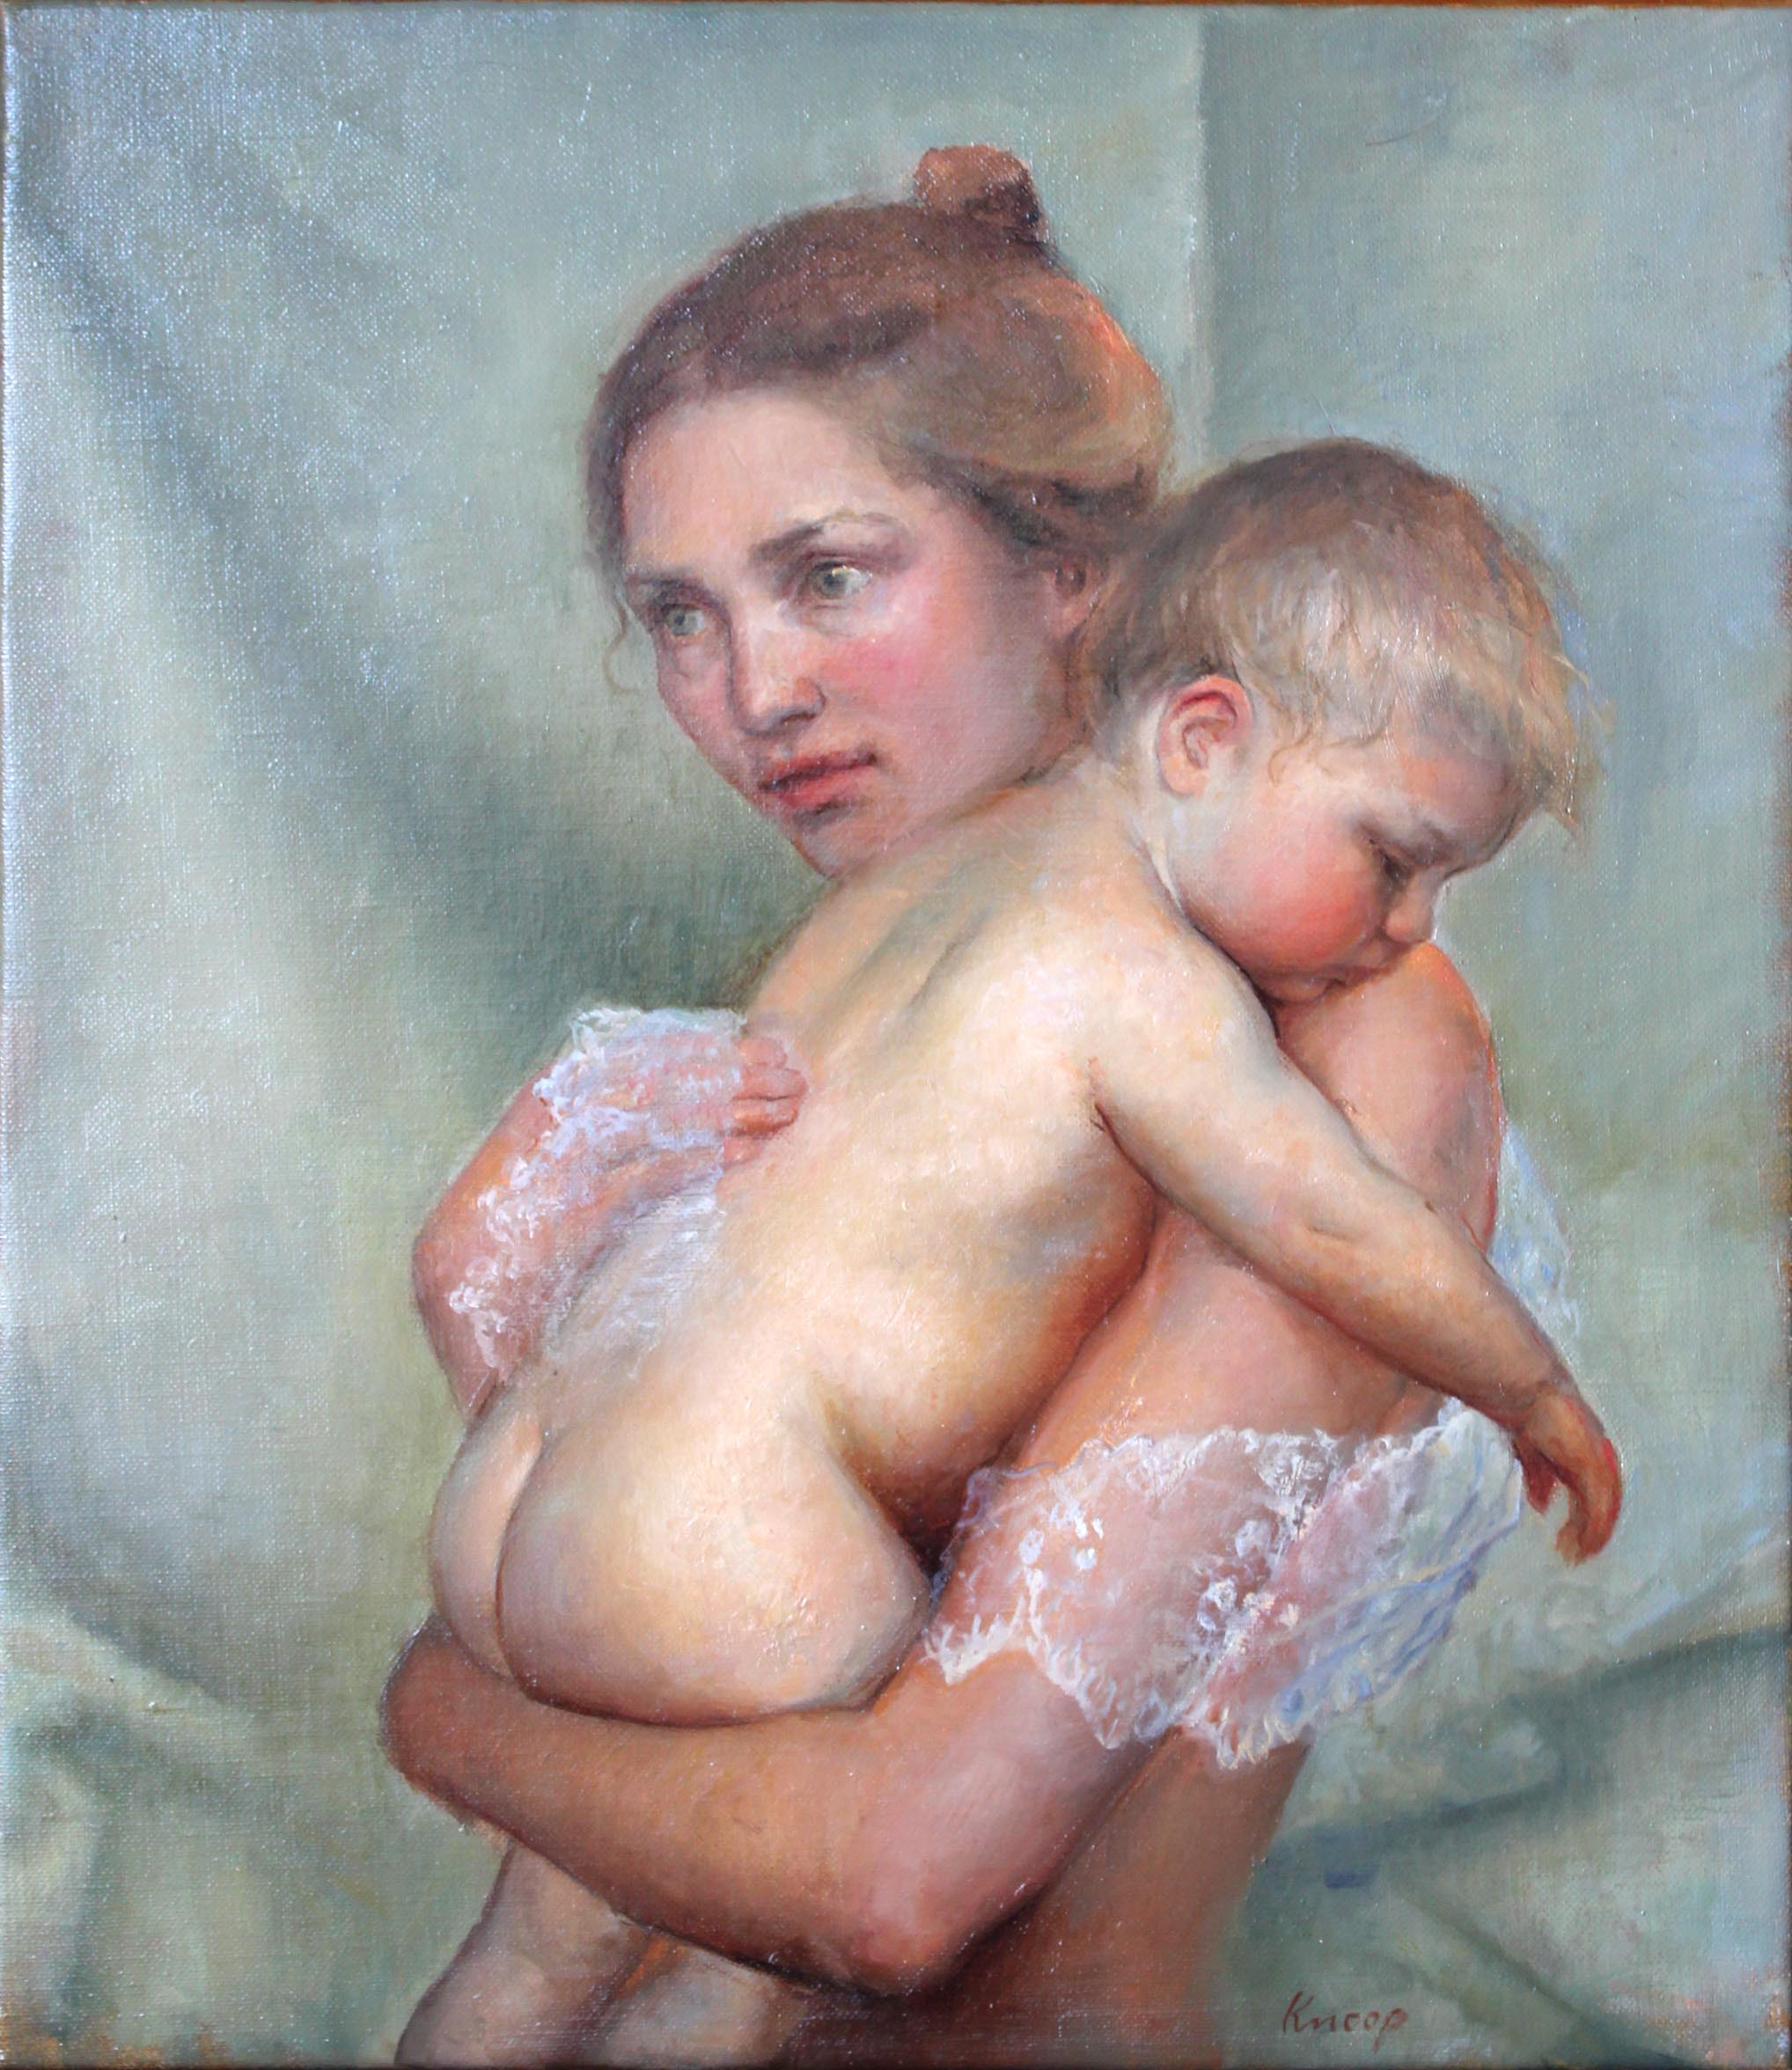 Baby skin, 2015. Oil on canvas, 40 x 35 cm.